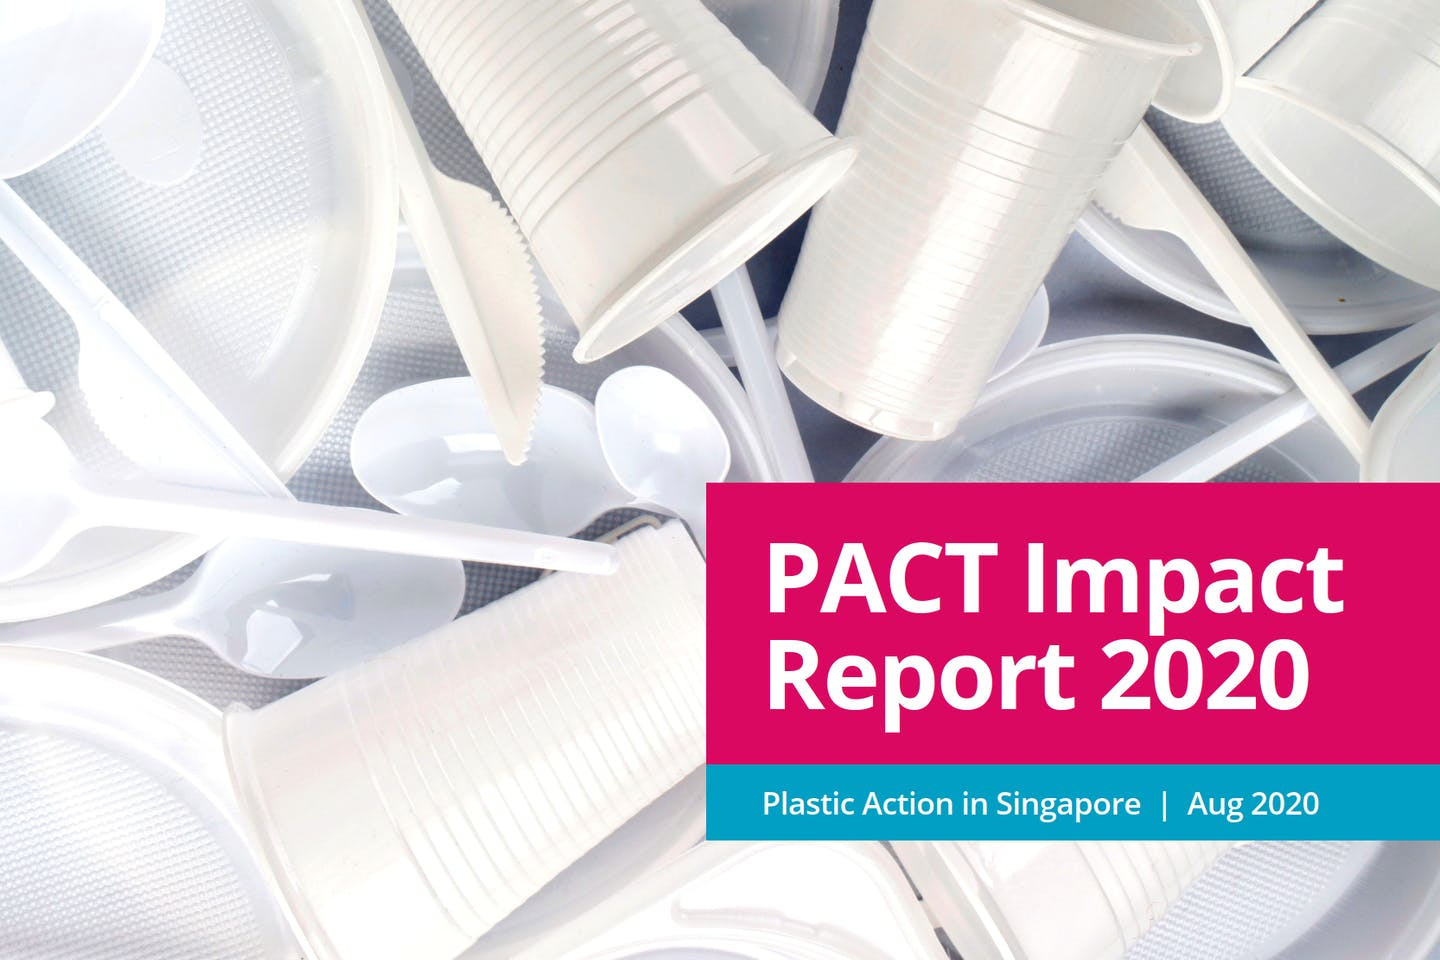 Over 12 million pieces of single-use plastic packaging and items saved with industry initiative